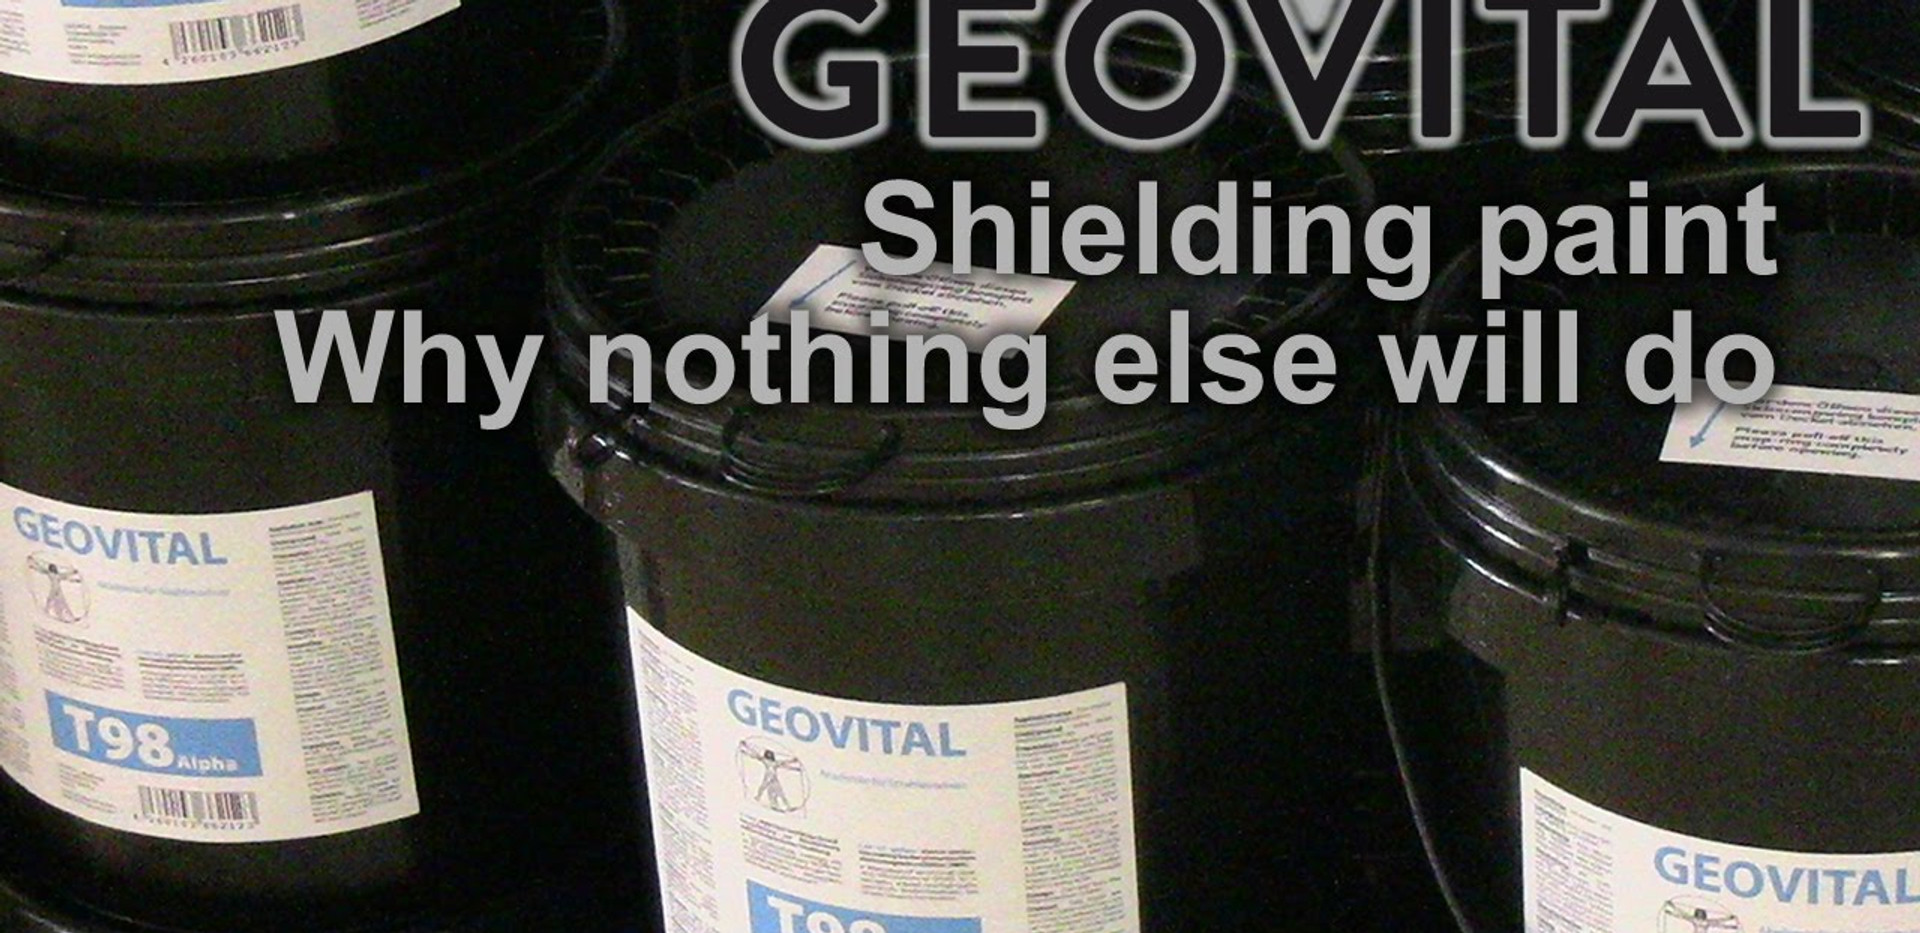 Why is T98Alpha the only shielding paint worthwhile?